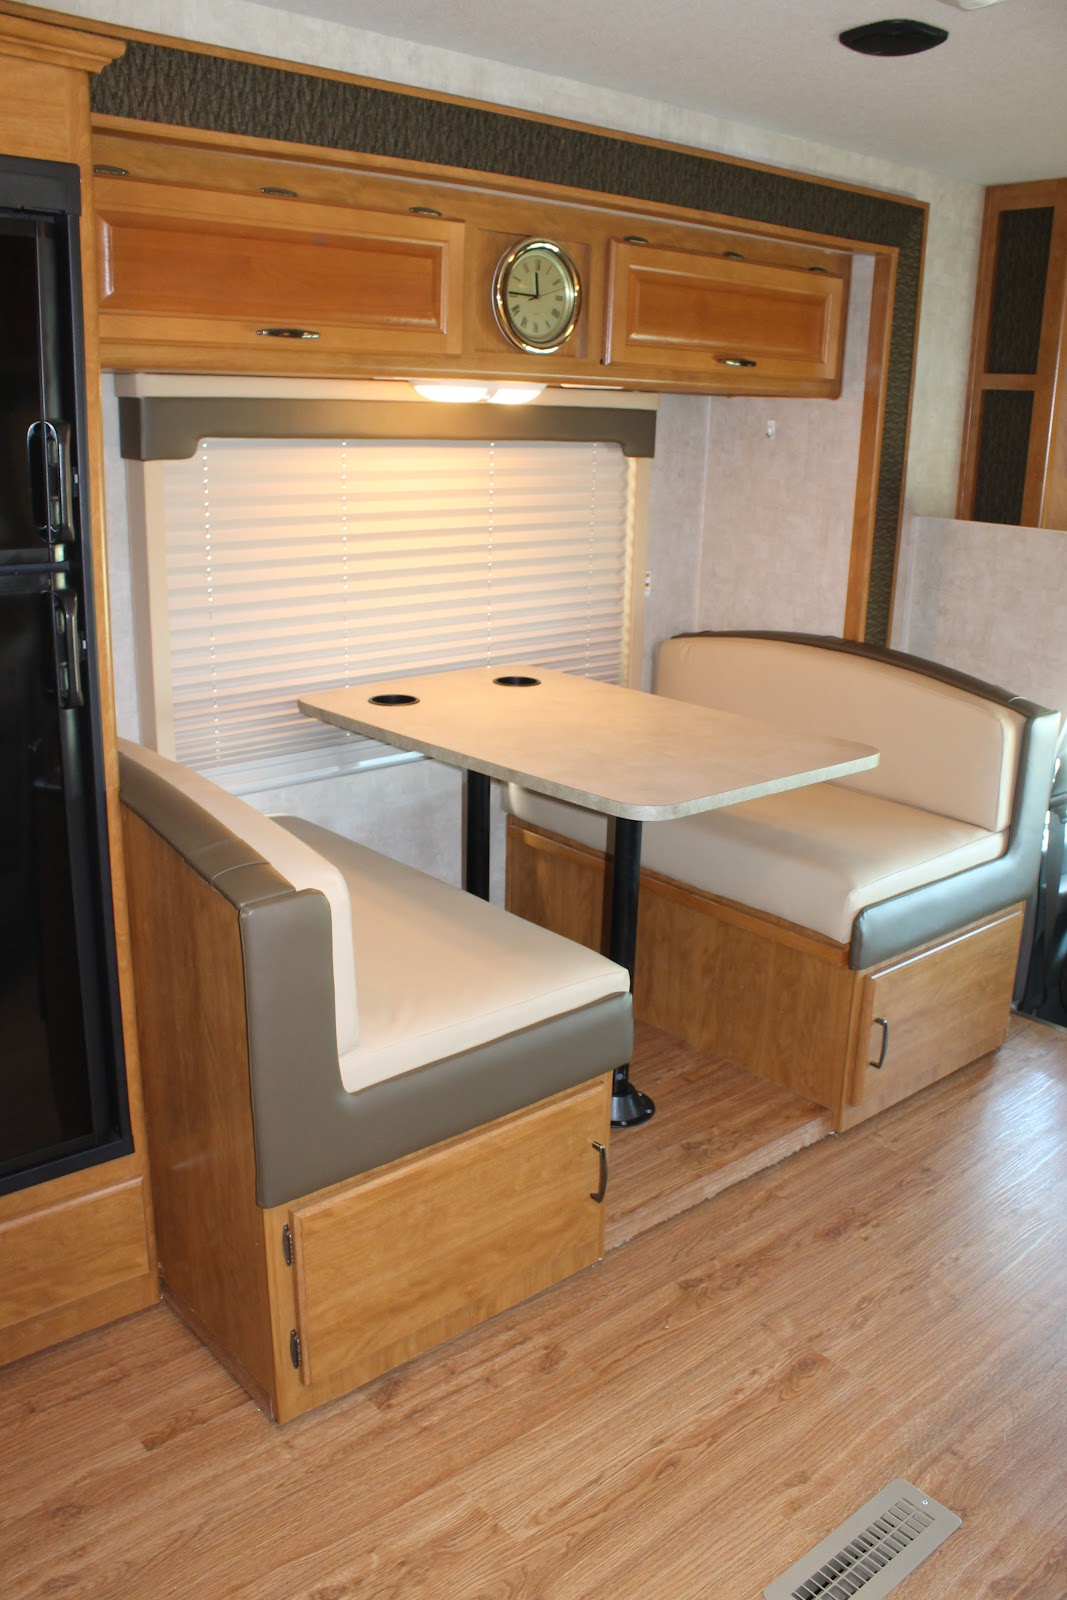 Countryside Interiors  Transforming RVs and Trailers since the 80s 2006 Fleetwood  New Wood